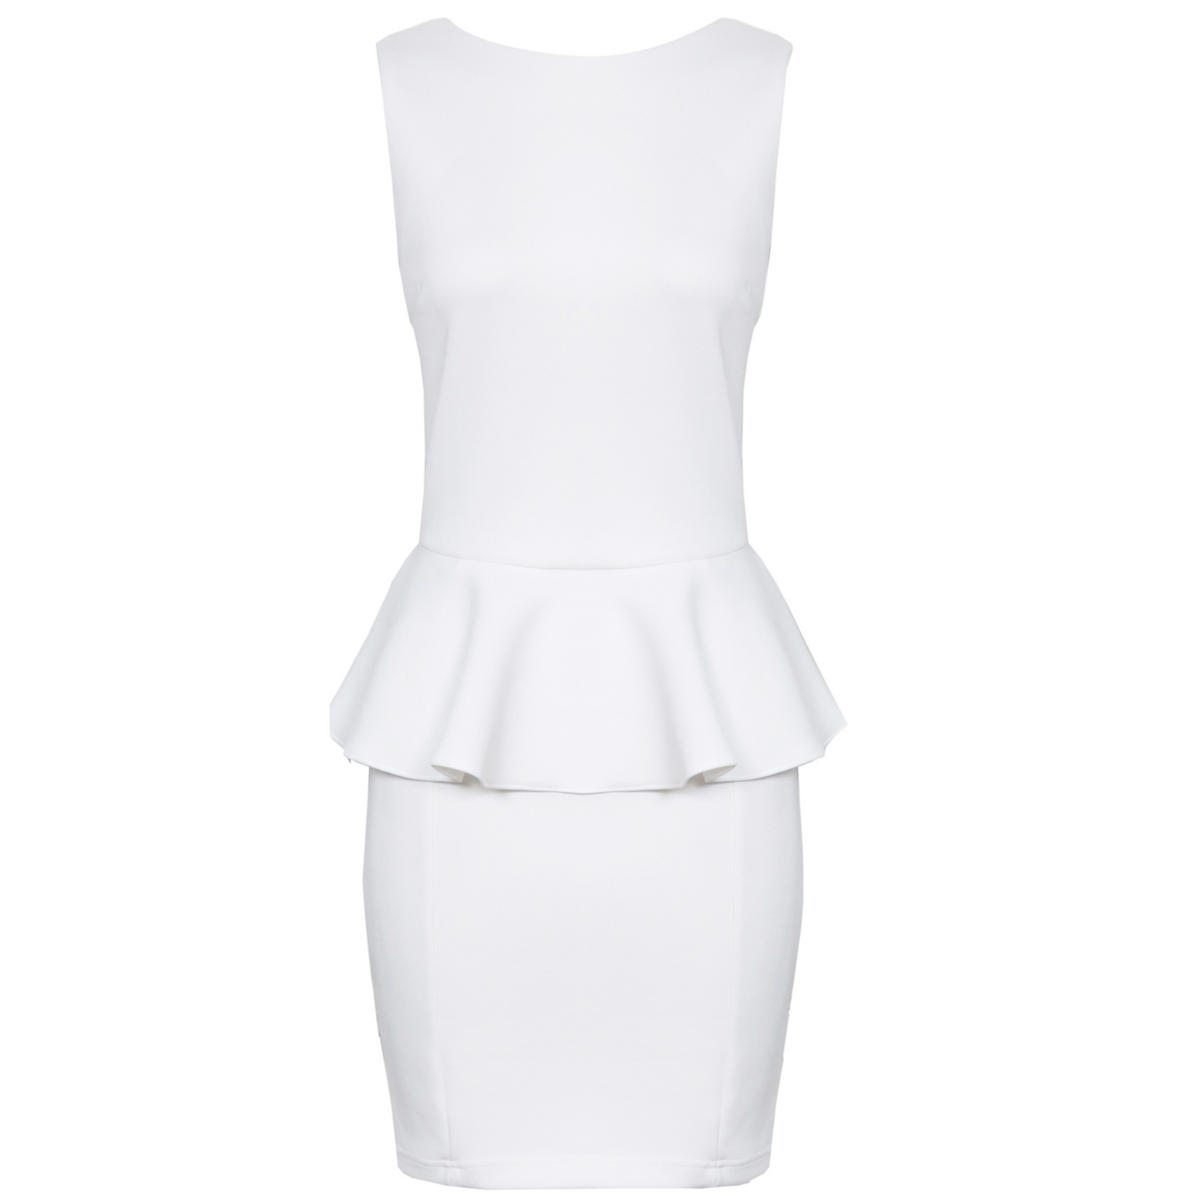 White Tailored Peplum Dress Preview